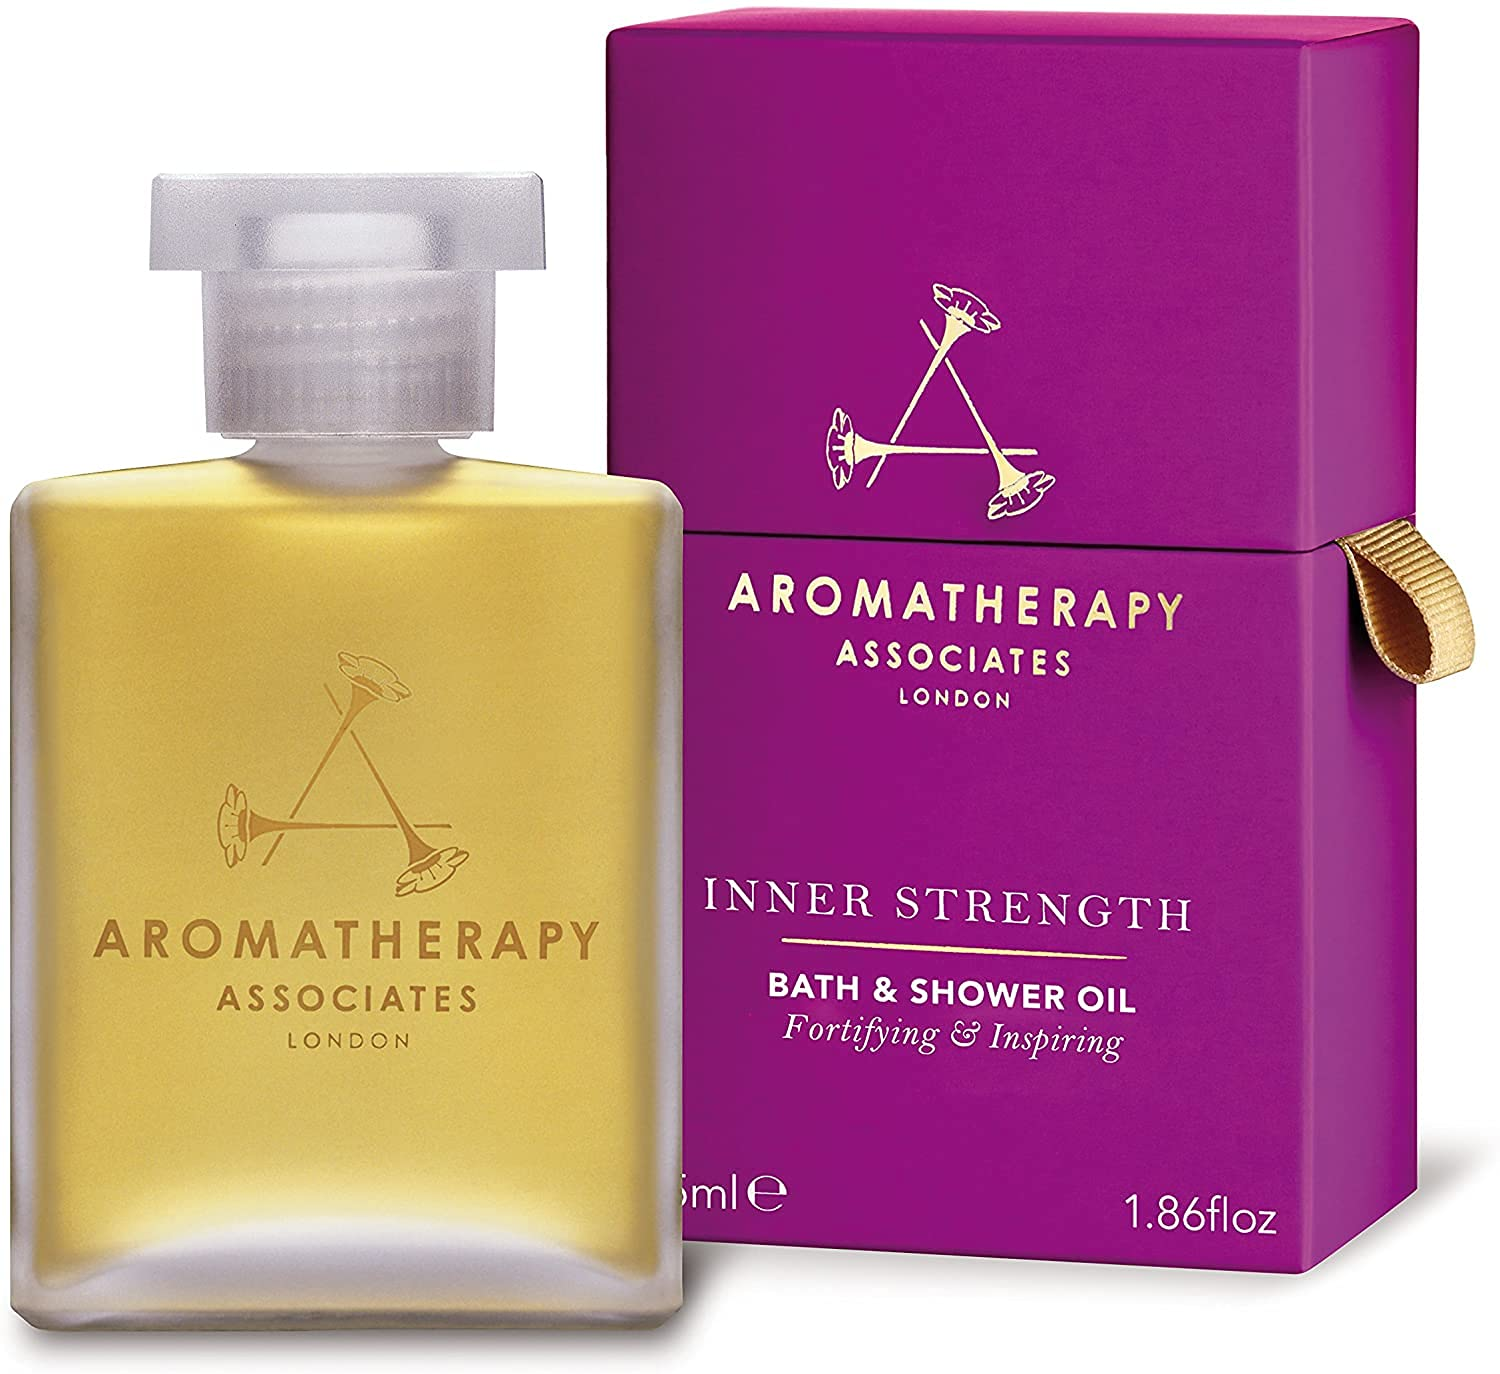 Seasonal New Free Shipping Wrap Introduction Aromatherapy Associates Inner Strength Bath Oil And 1.86F Shower